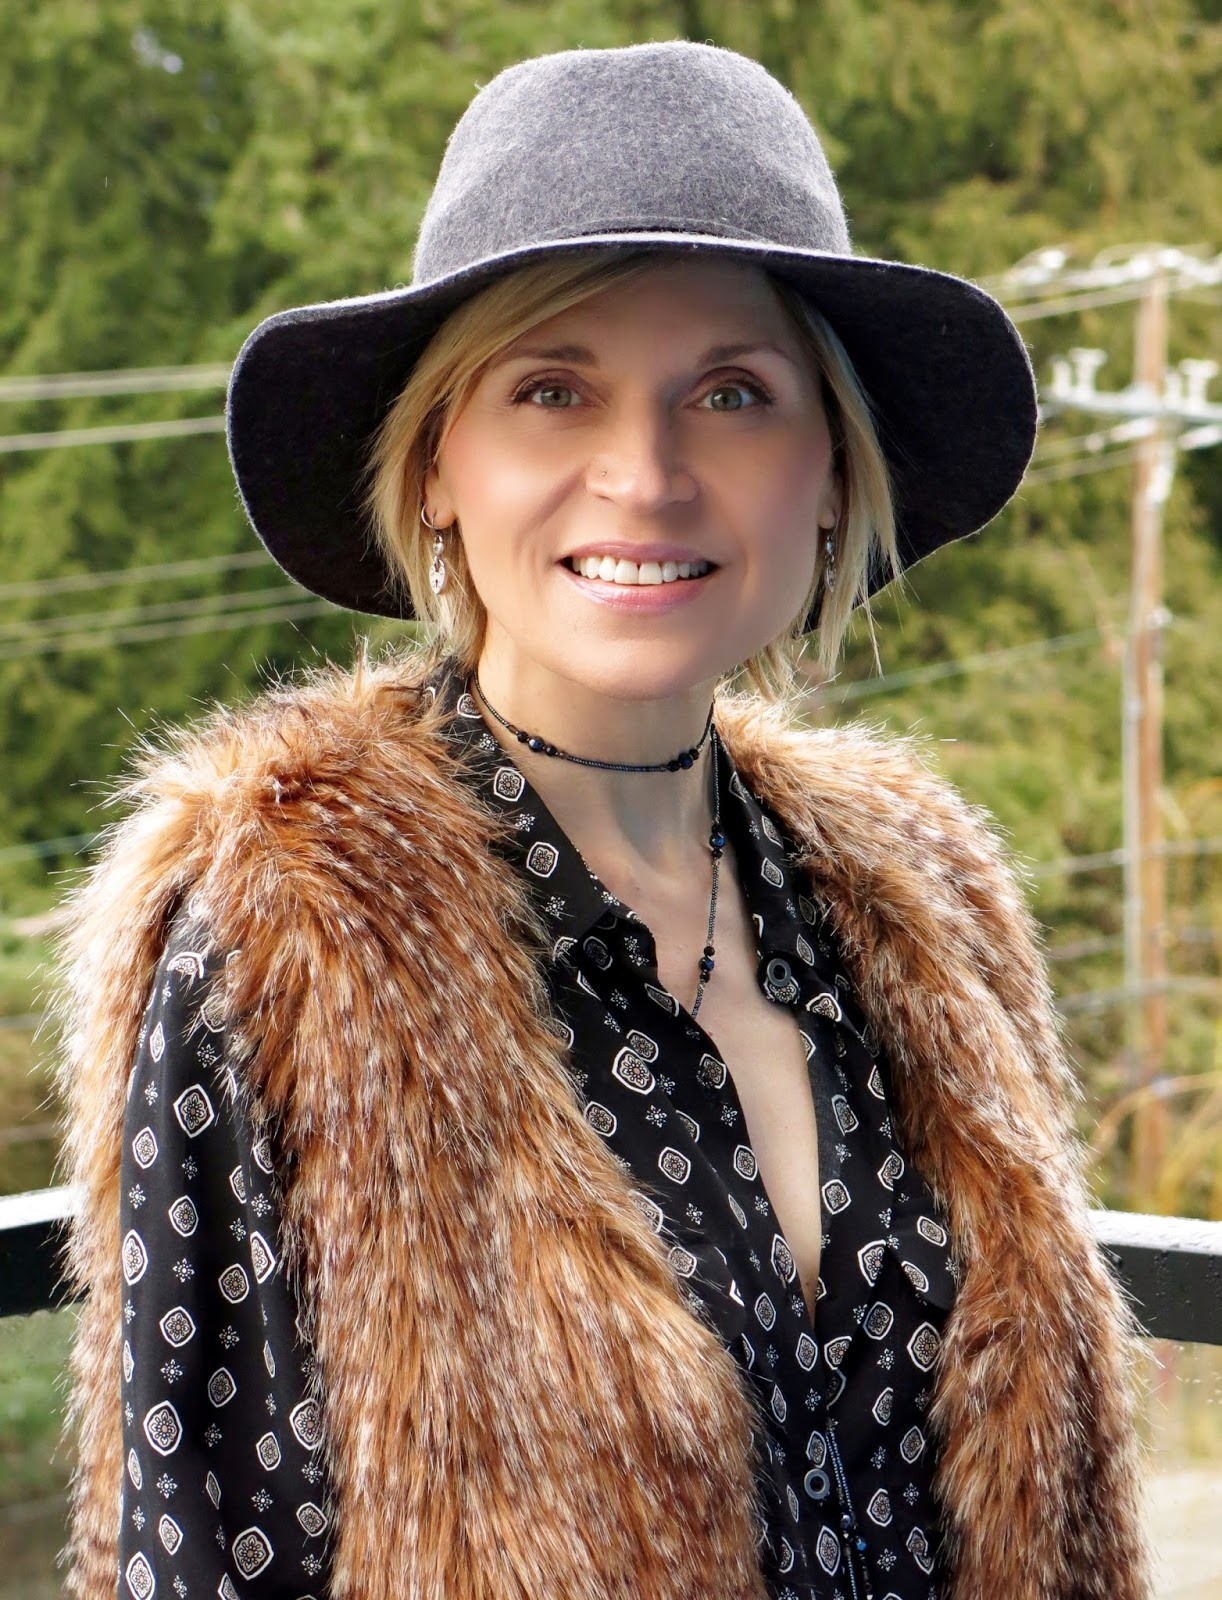 black patterned shirt, long faux-fur vest, and floppy hat